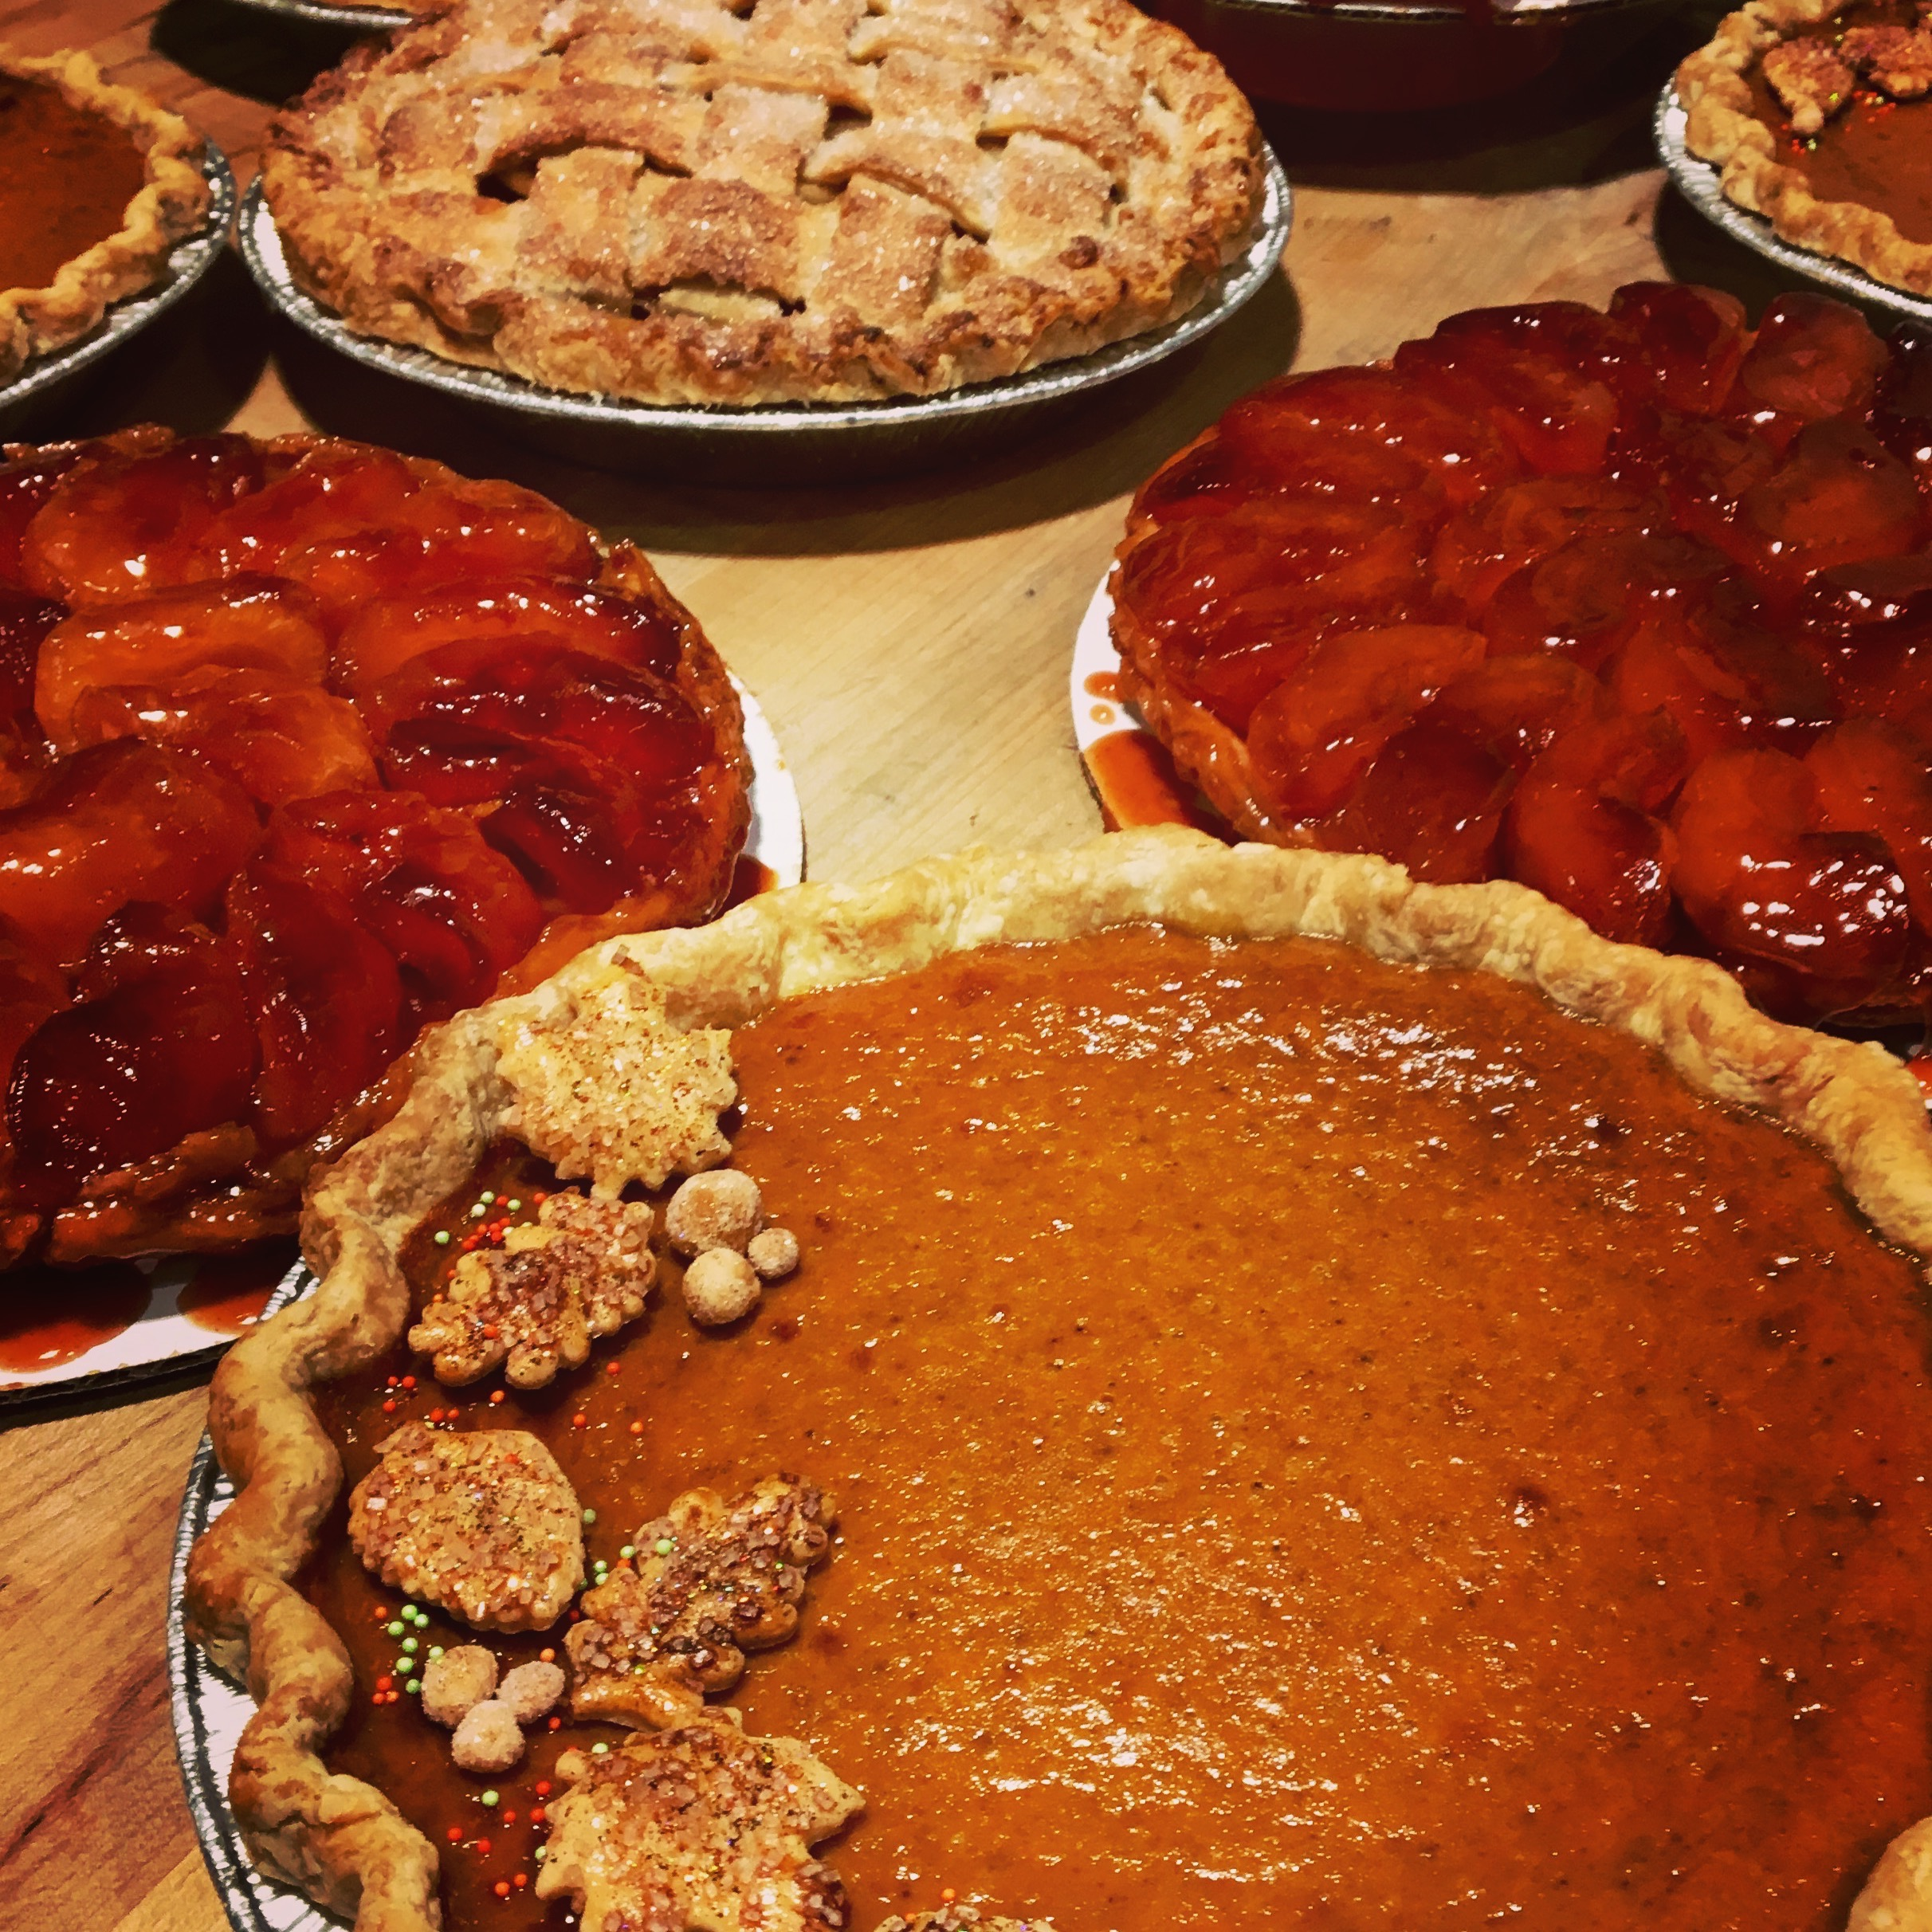 pies_holiday spread.jpg